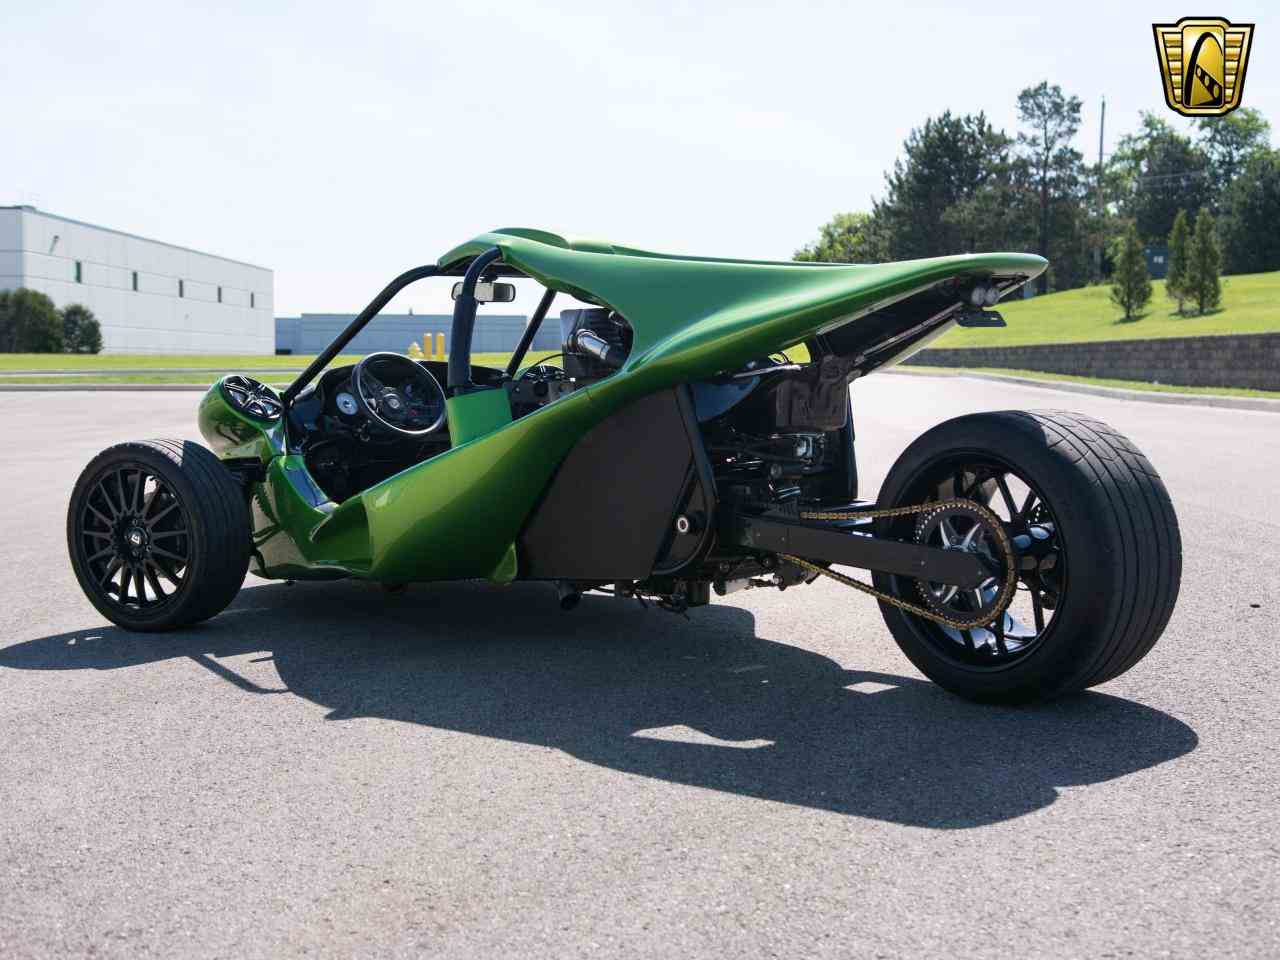 Large Picture of 2008 Kawasaki T-Rex Replica located in Wisconsin Offered by Gateway Classic Cars - Milwaukee - L7NA